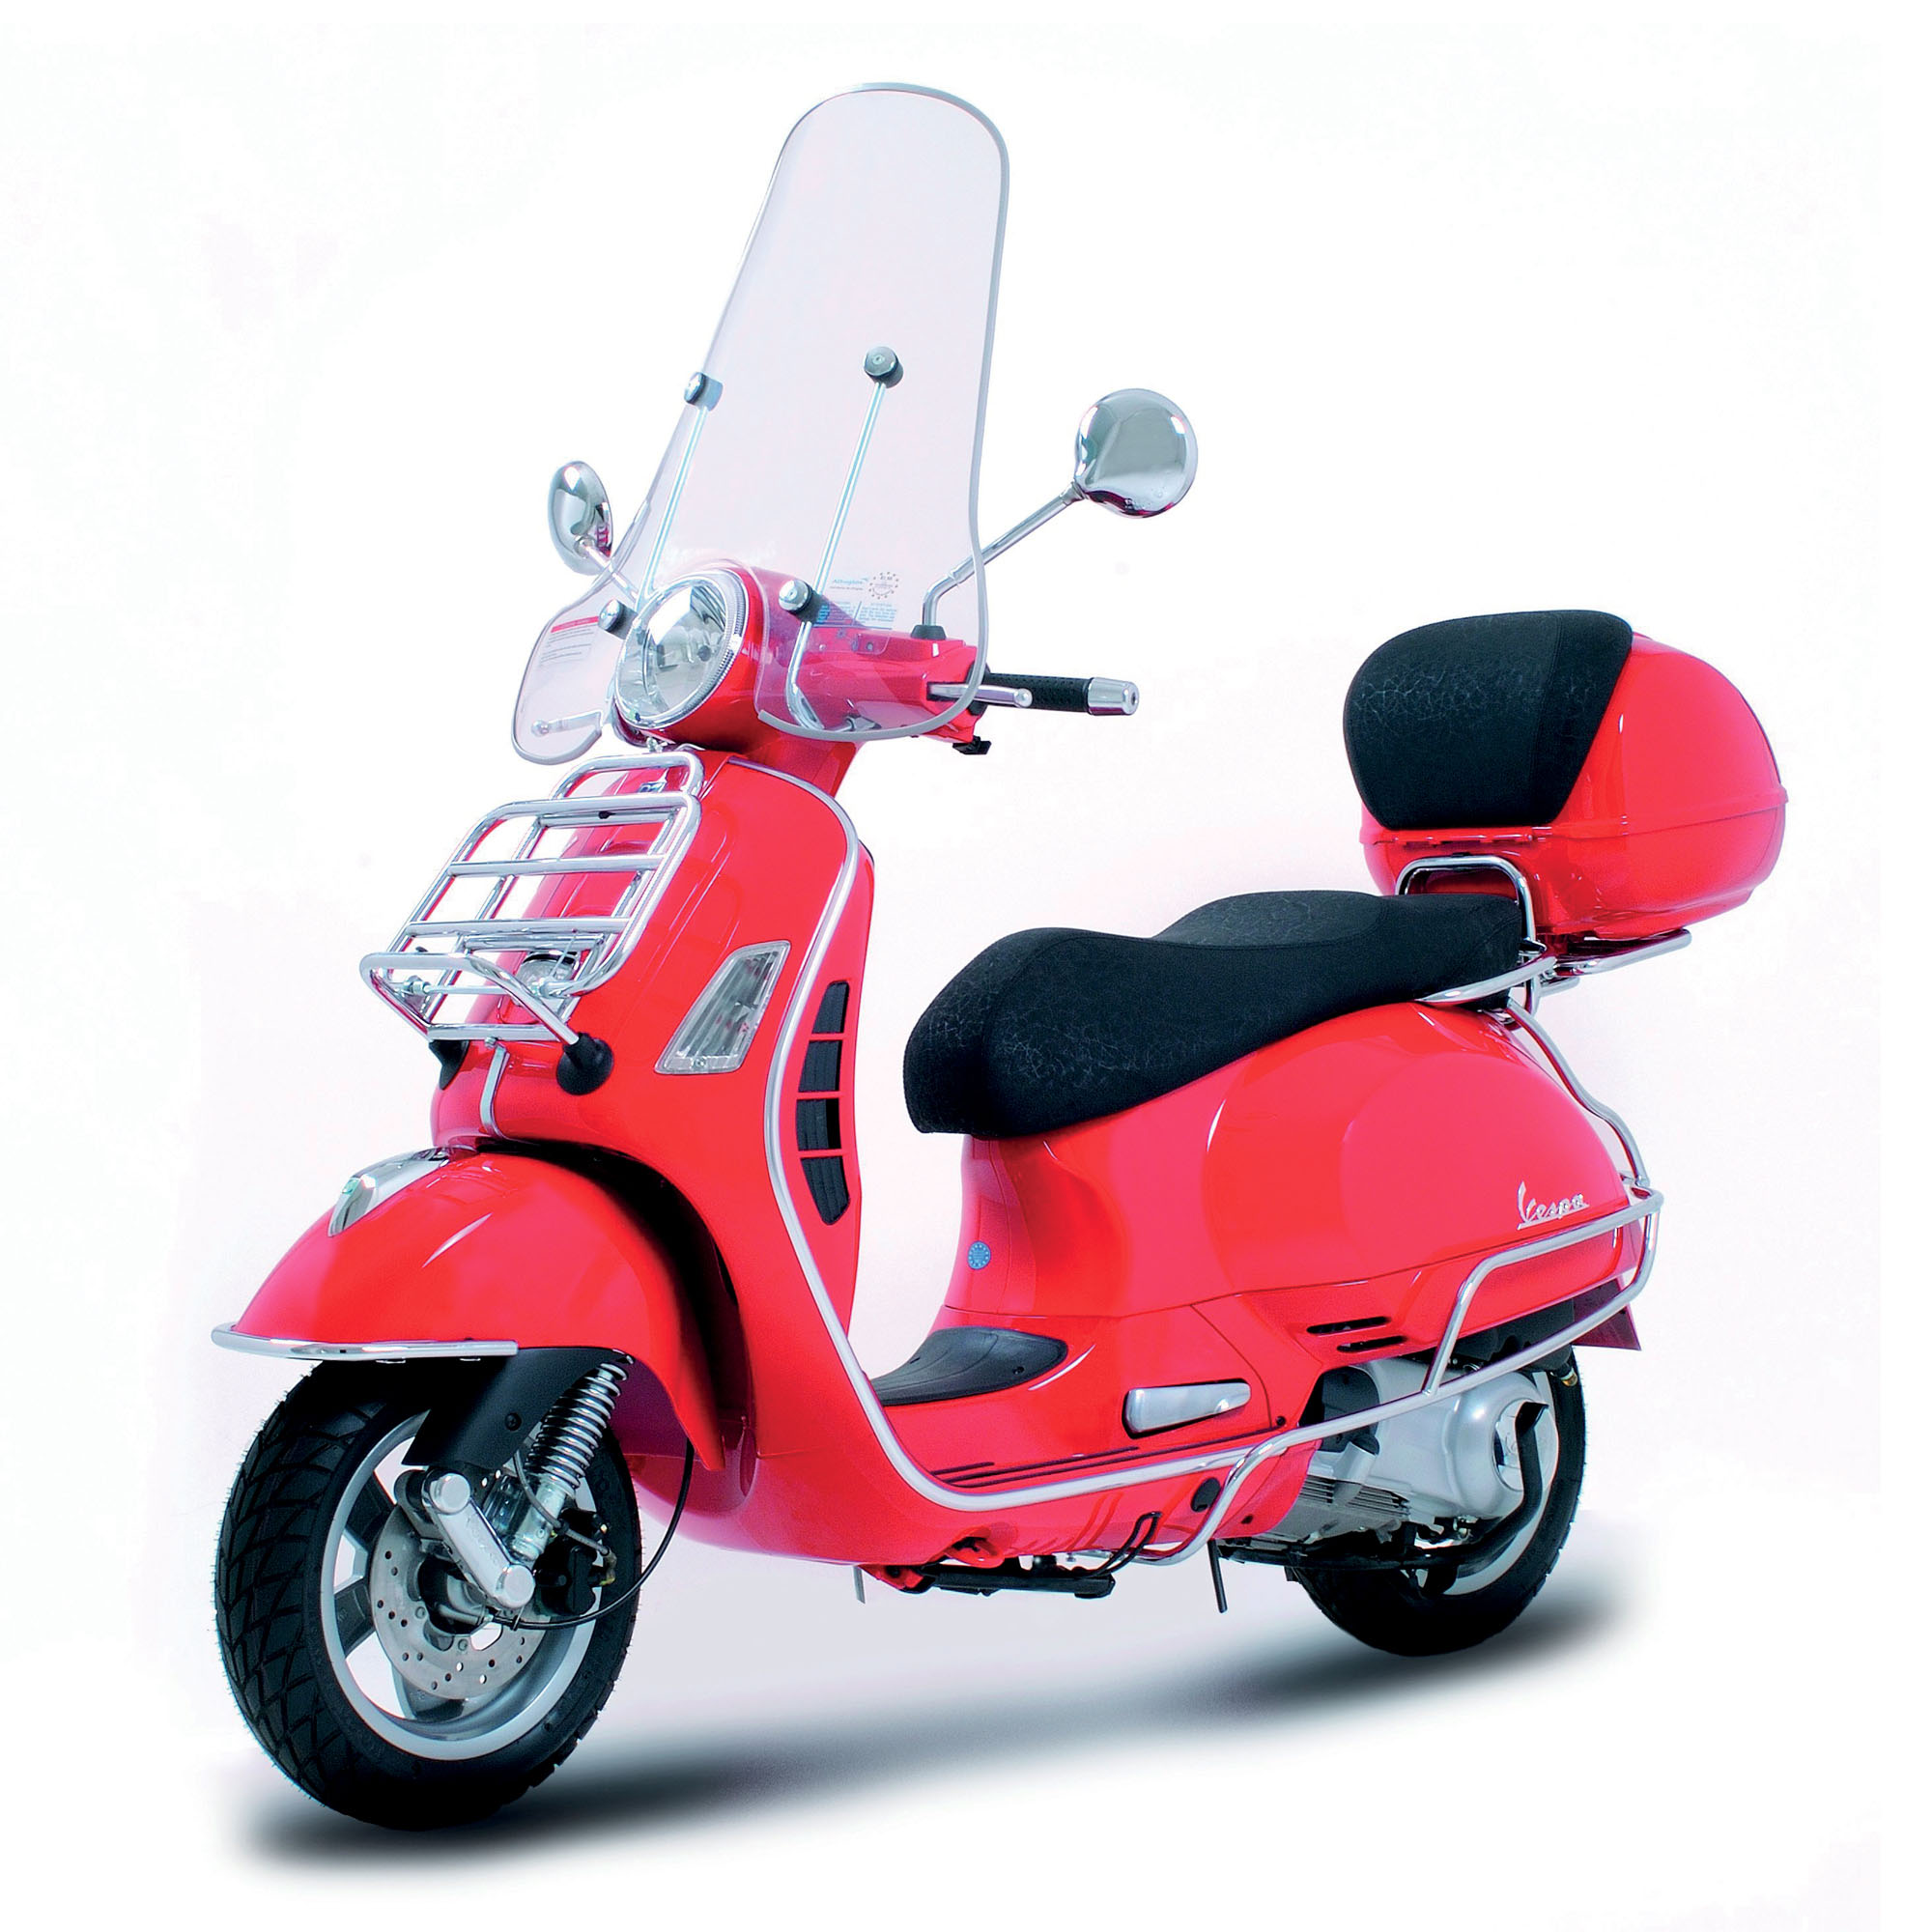 sturzb gel vespa gts vespa zubeh r piaggio vespa. Black Bedroom Furniture Sets. Home Design Ideas